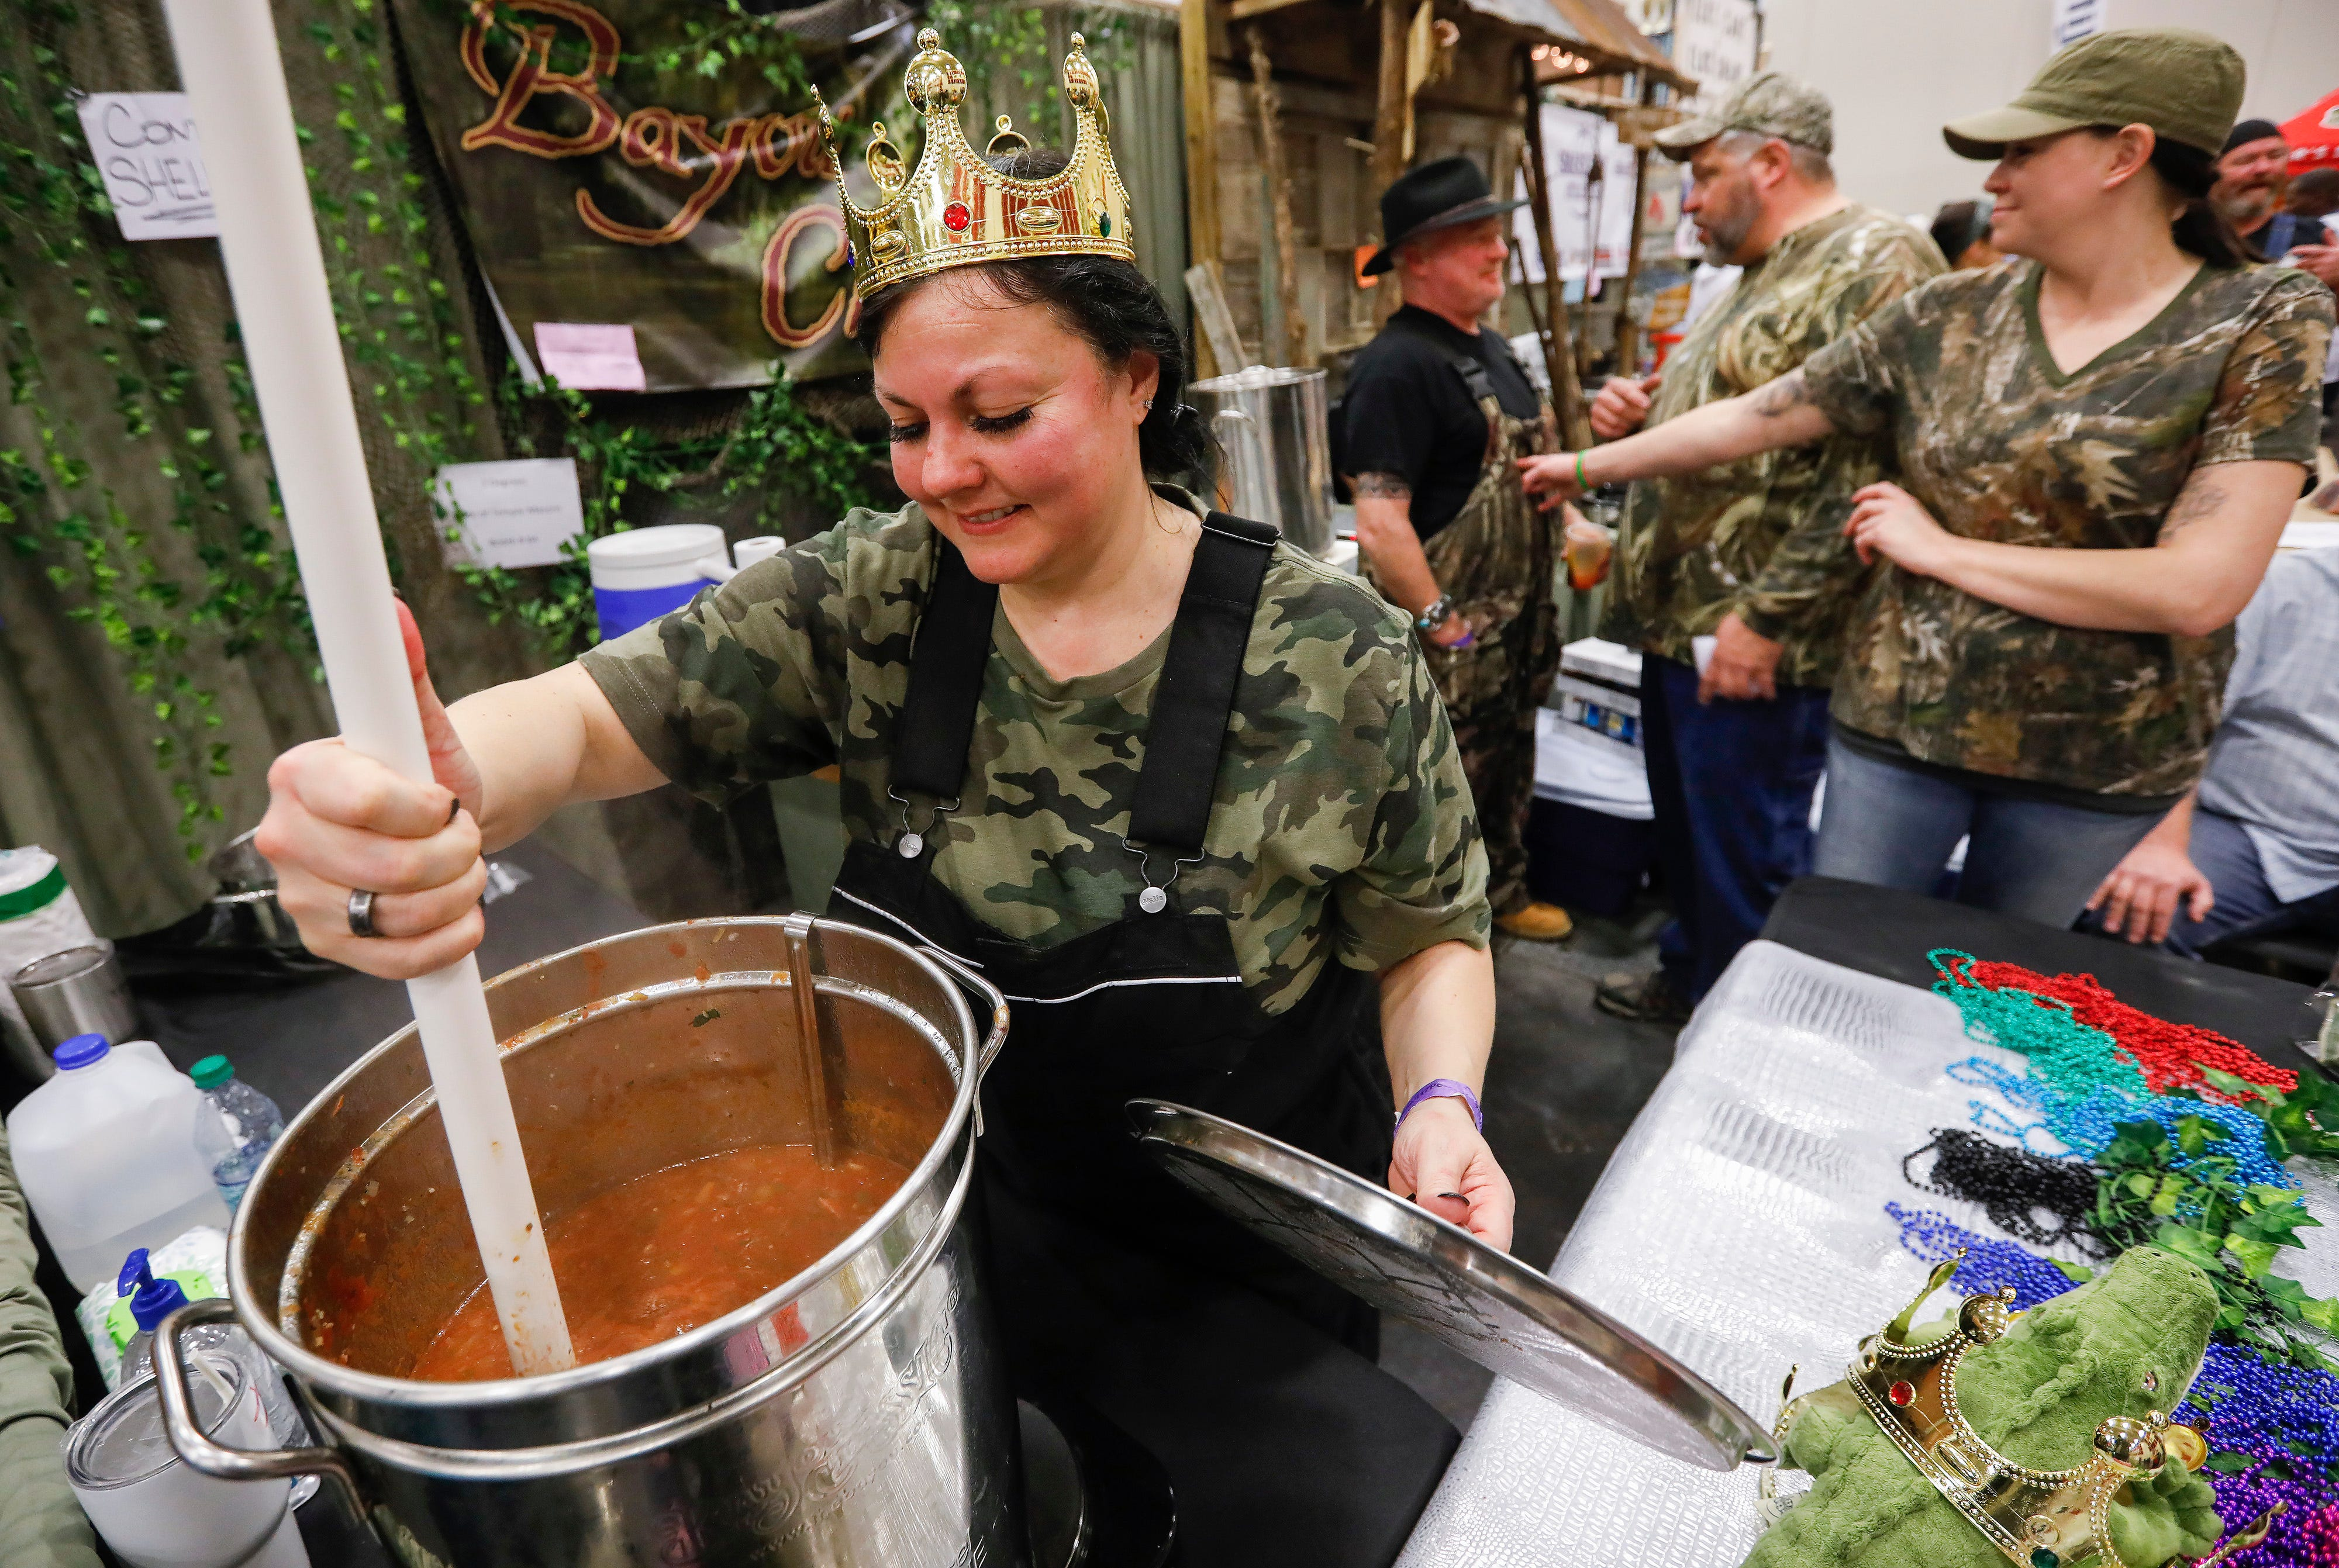 Stacia Buffington, of the Gate of the Masons Temple, stirs her team's chili during the 2019 Sertoma Chili Cook-Off at the Springfield Expo Center on Saturday, Feb. 23, 2019.